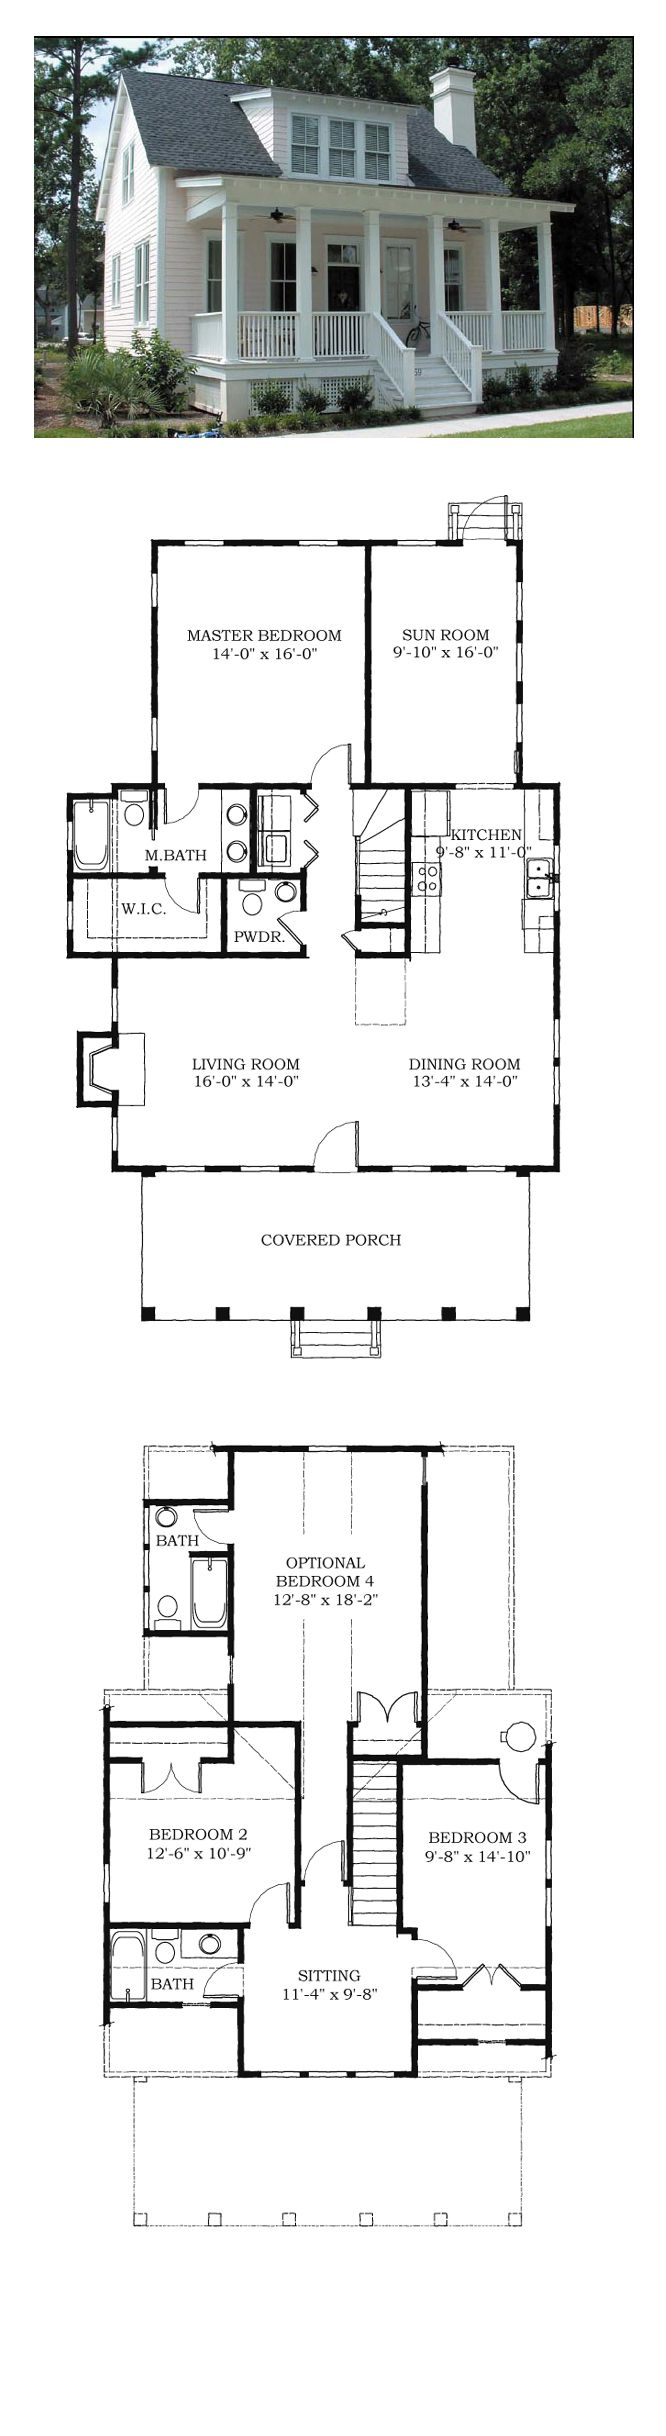 Bathroom drawings design - Best 25 Small Bathroom Floor Plans Ideas On Pinterest Small Bathroom Layout Small Bathroom Plans And Small Shower Room